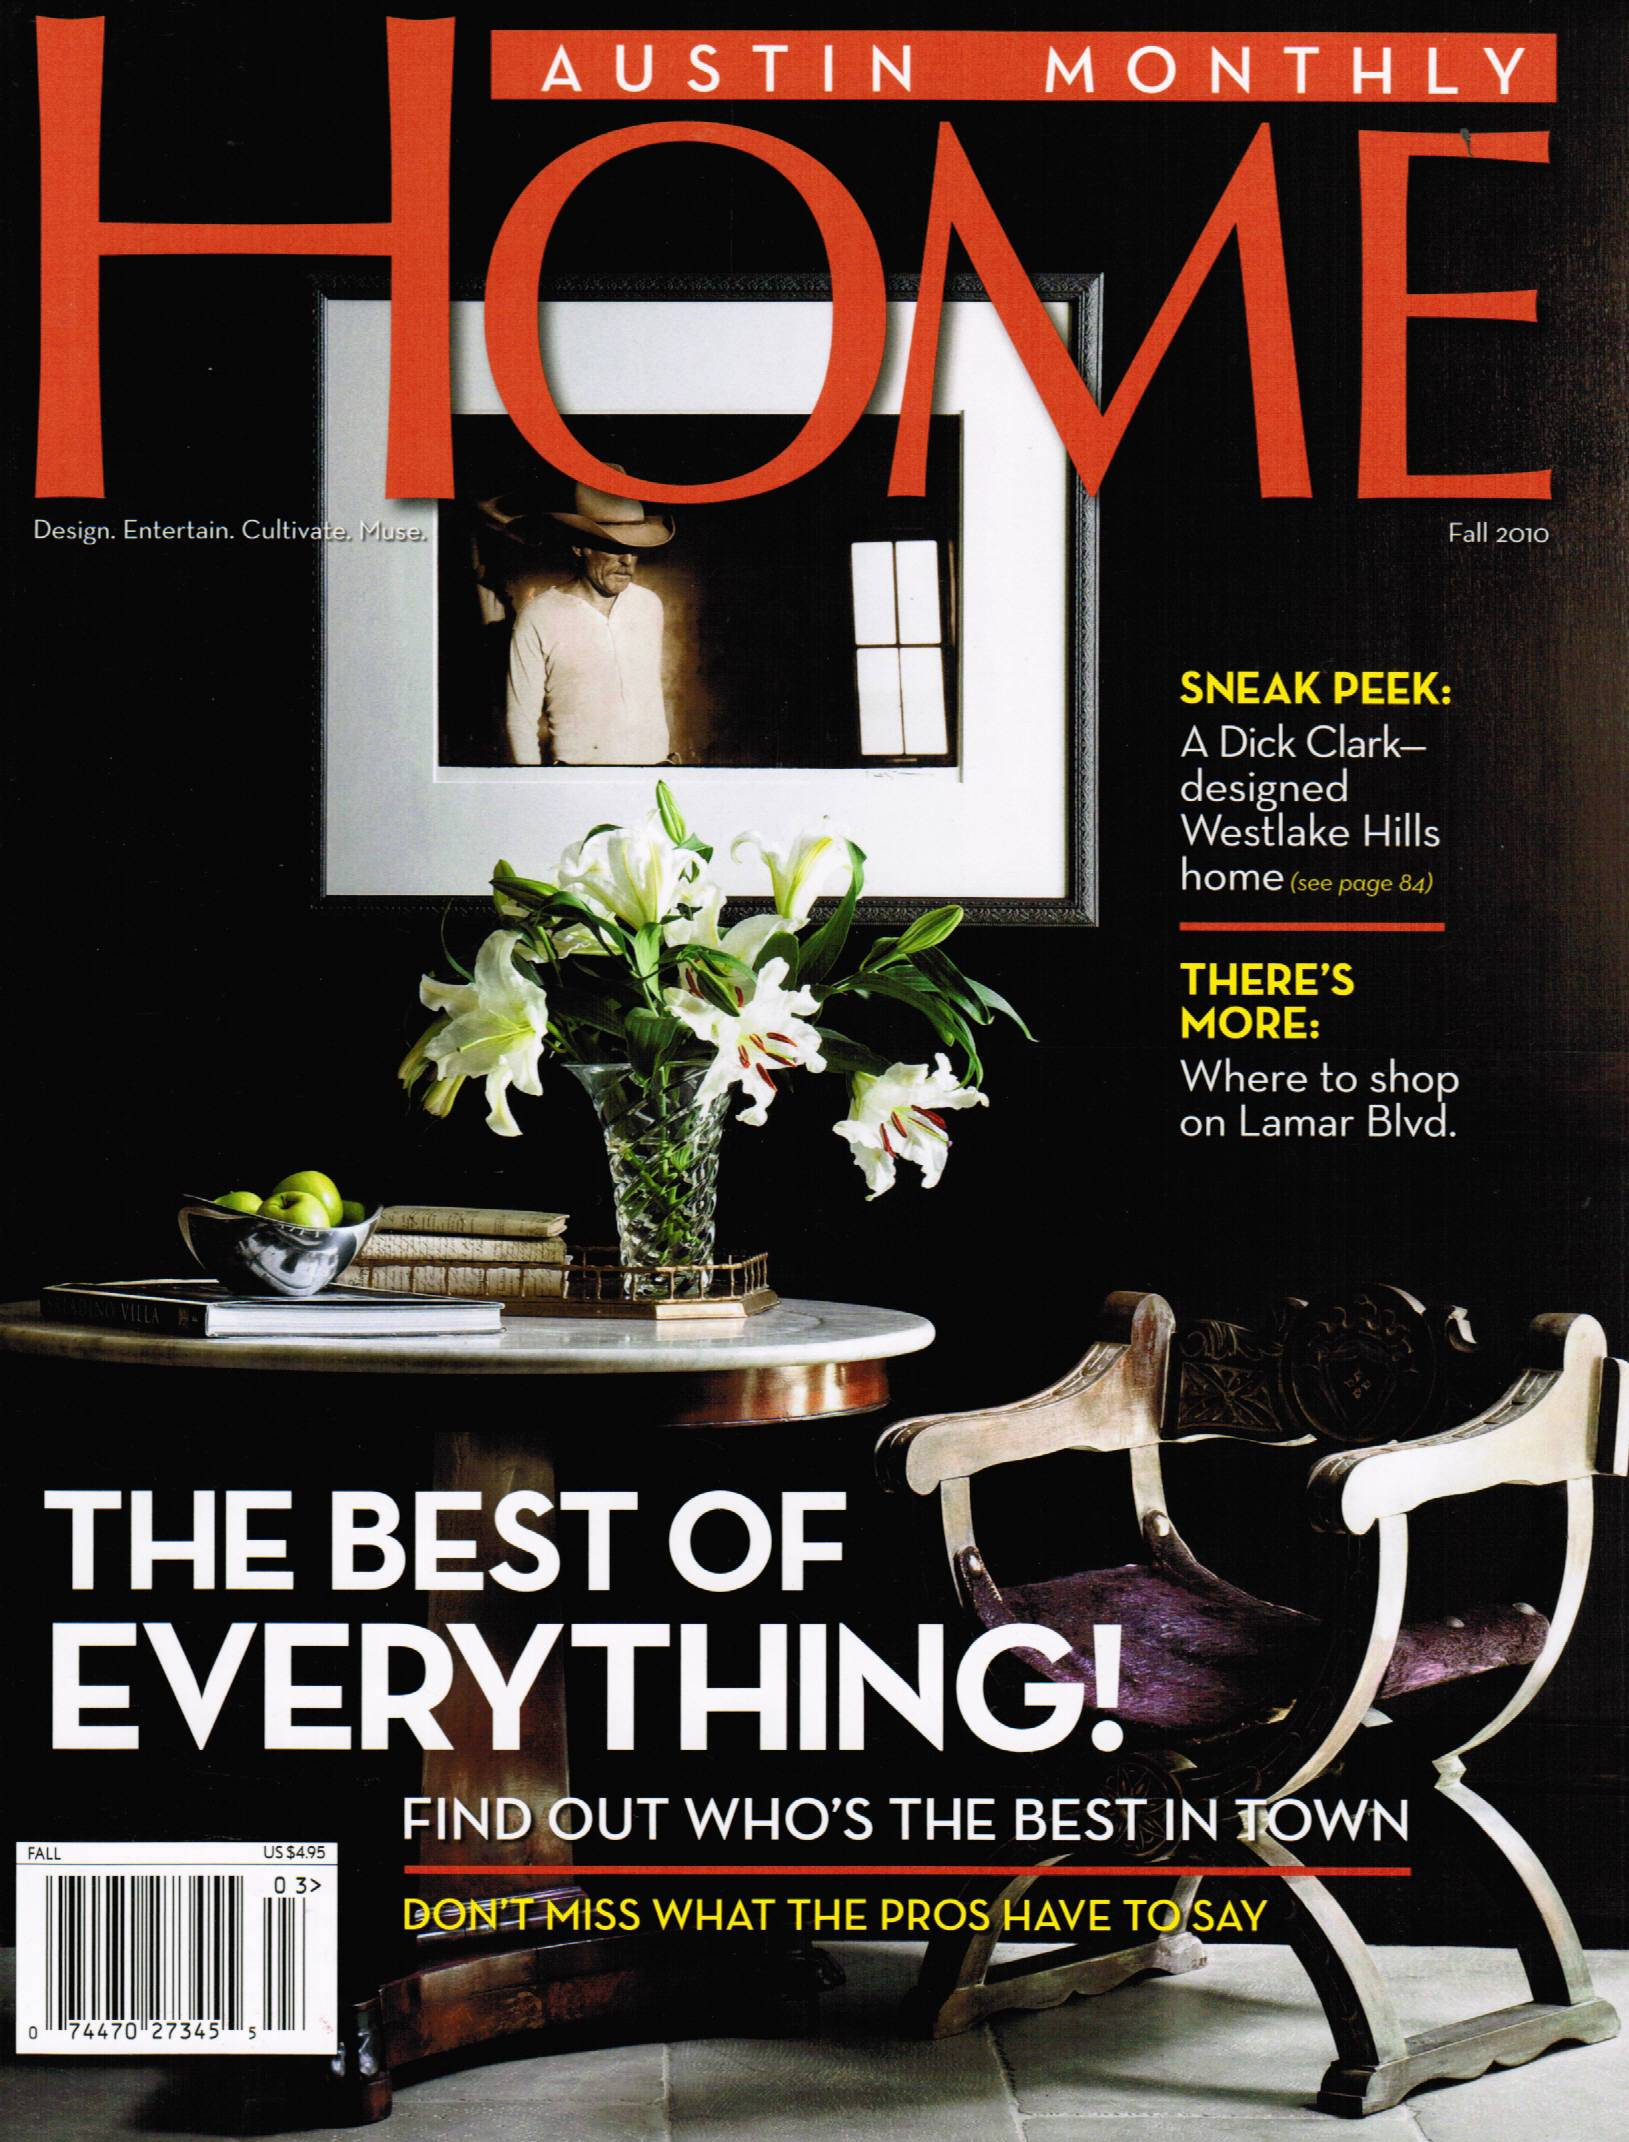 Austin_Monthly_Home_2010.jpg